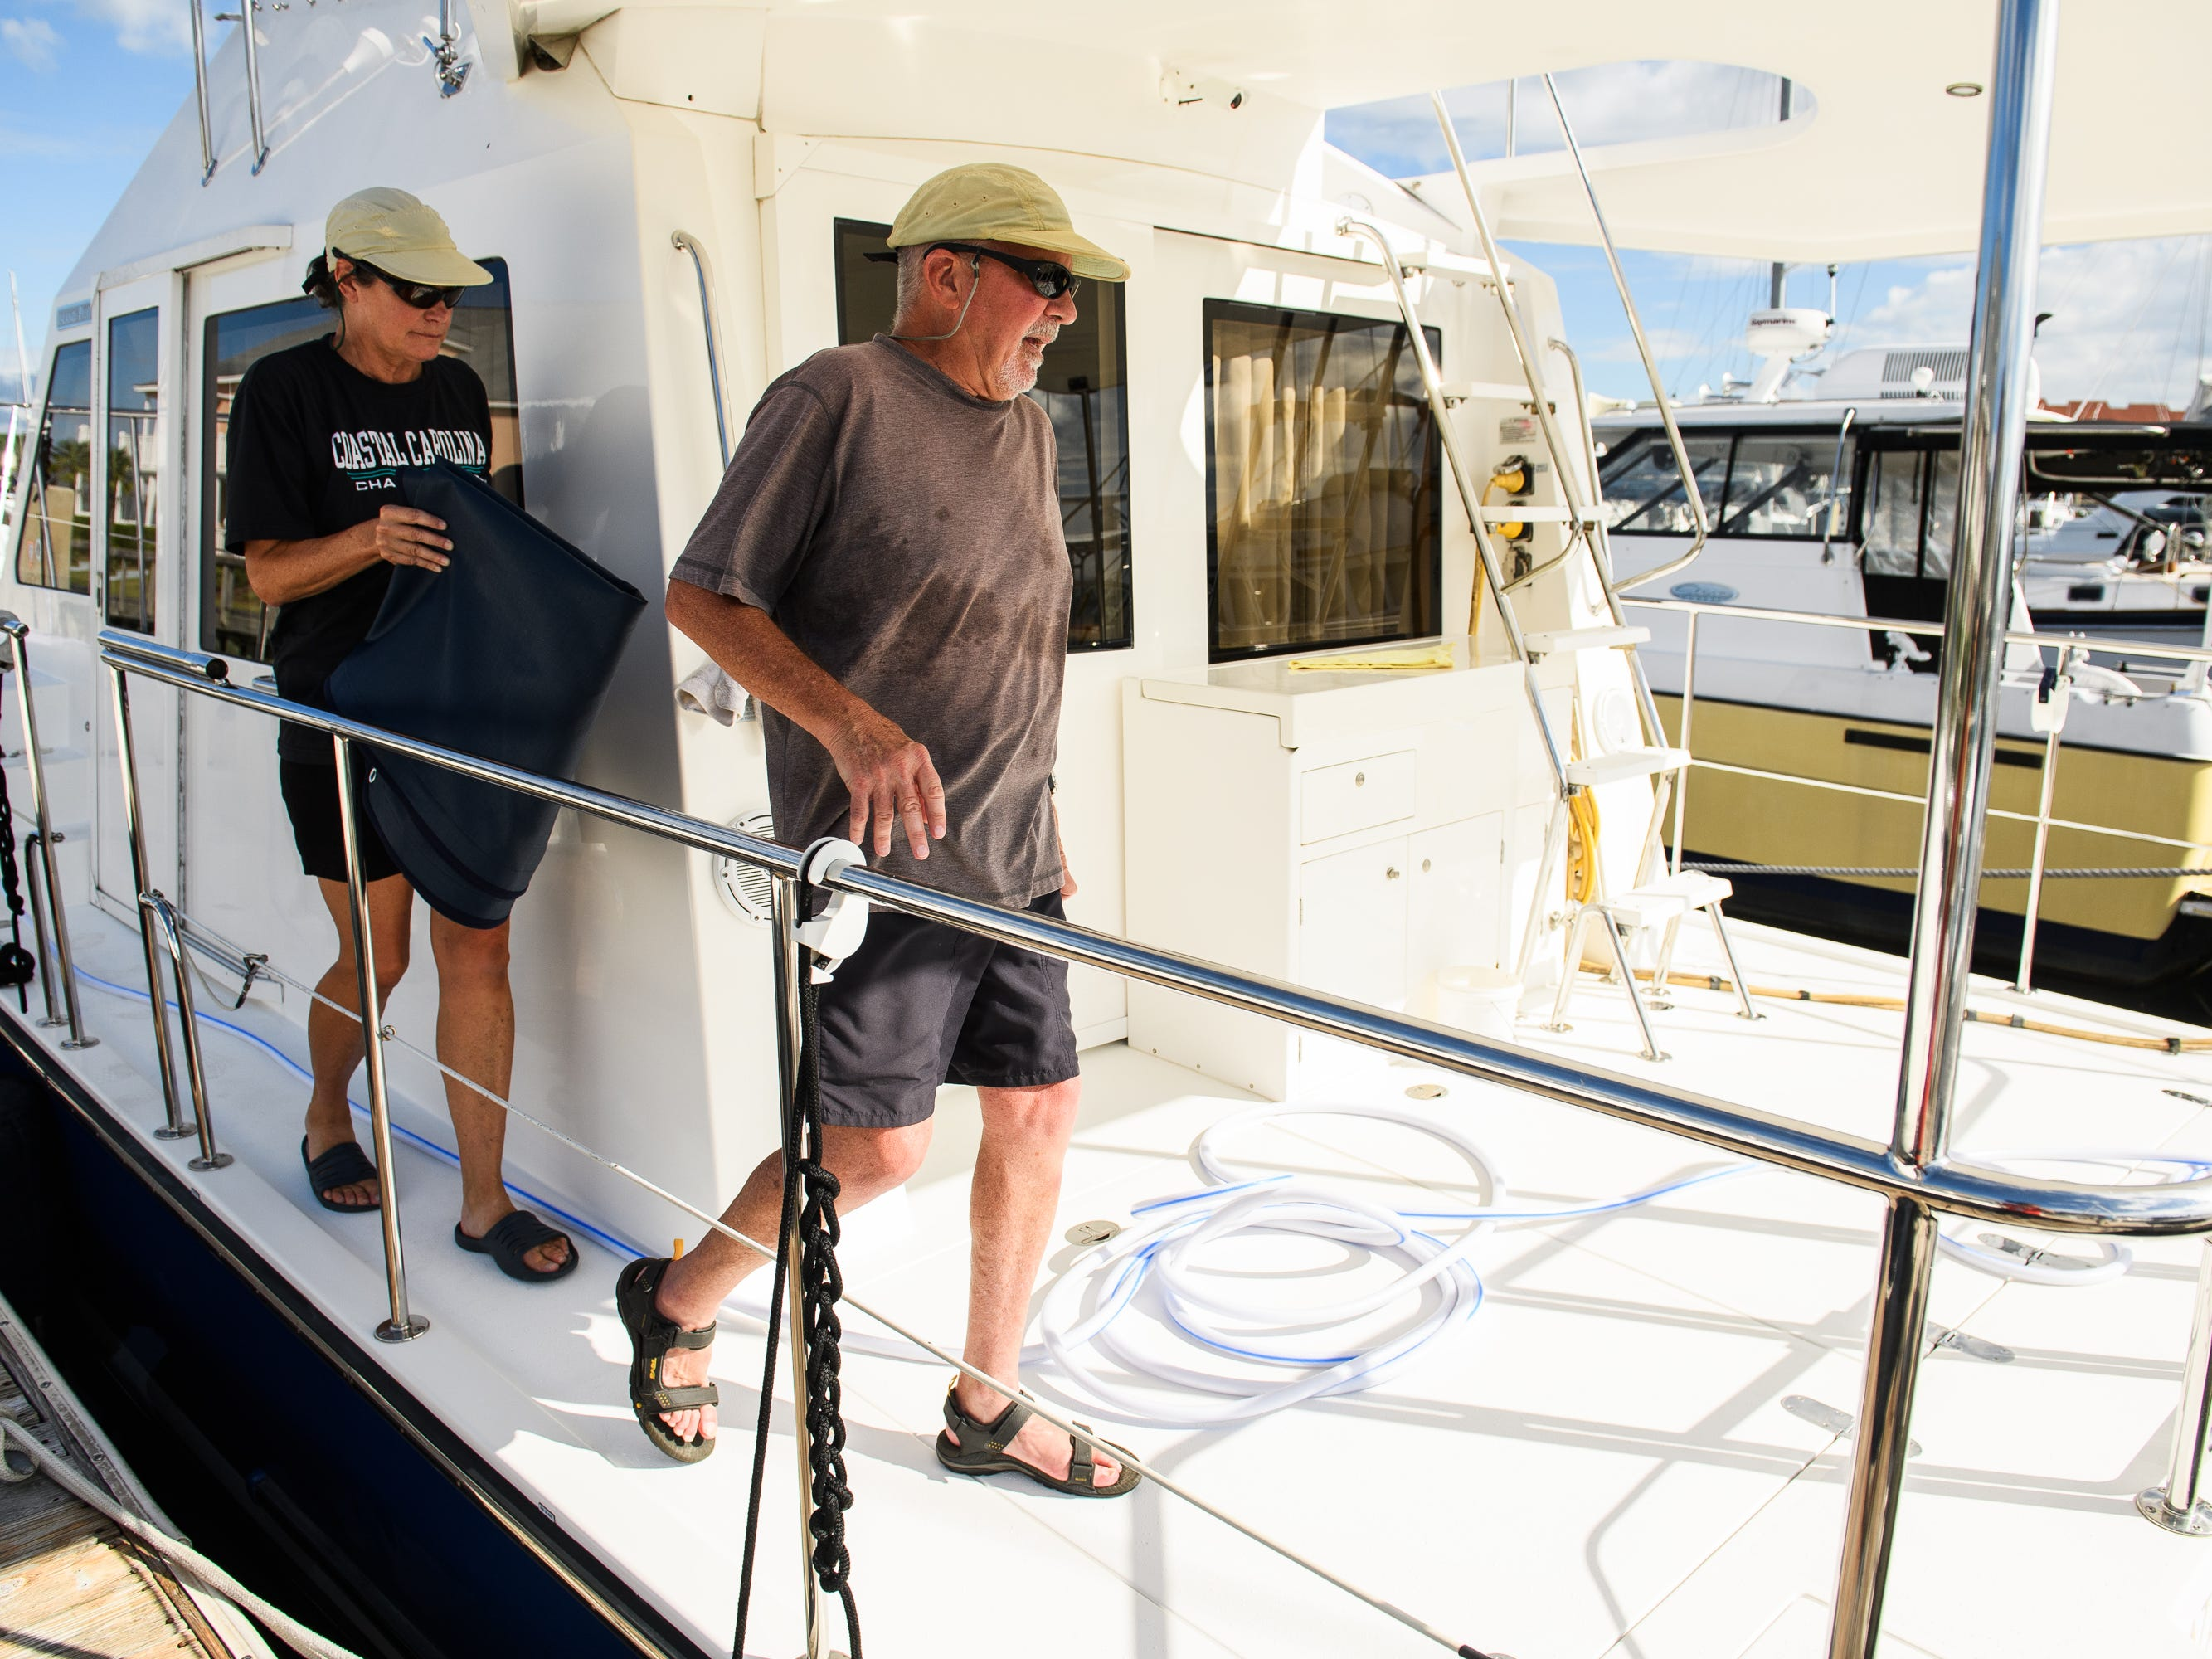 Eric an Barbara Coates prepare their boat for Hurricane Florence at the Lightkeepers Marina in North Myrtle Beach on Wednesday, Sept. 12, 2018. The couple said they will be staying for the hurricane and will be monitoring the docks from their nearby condo.